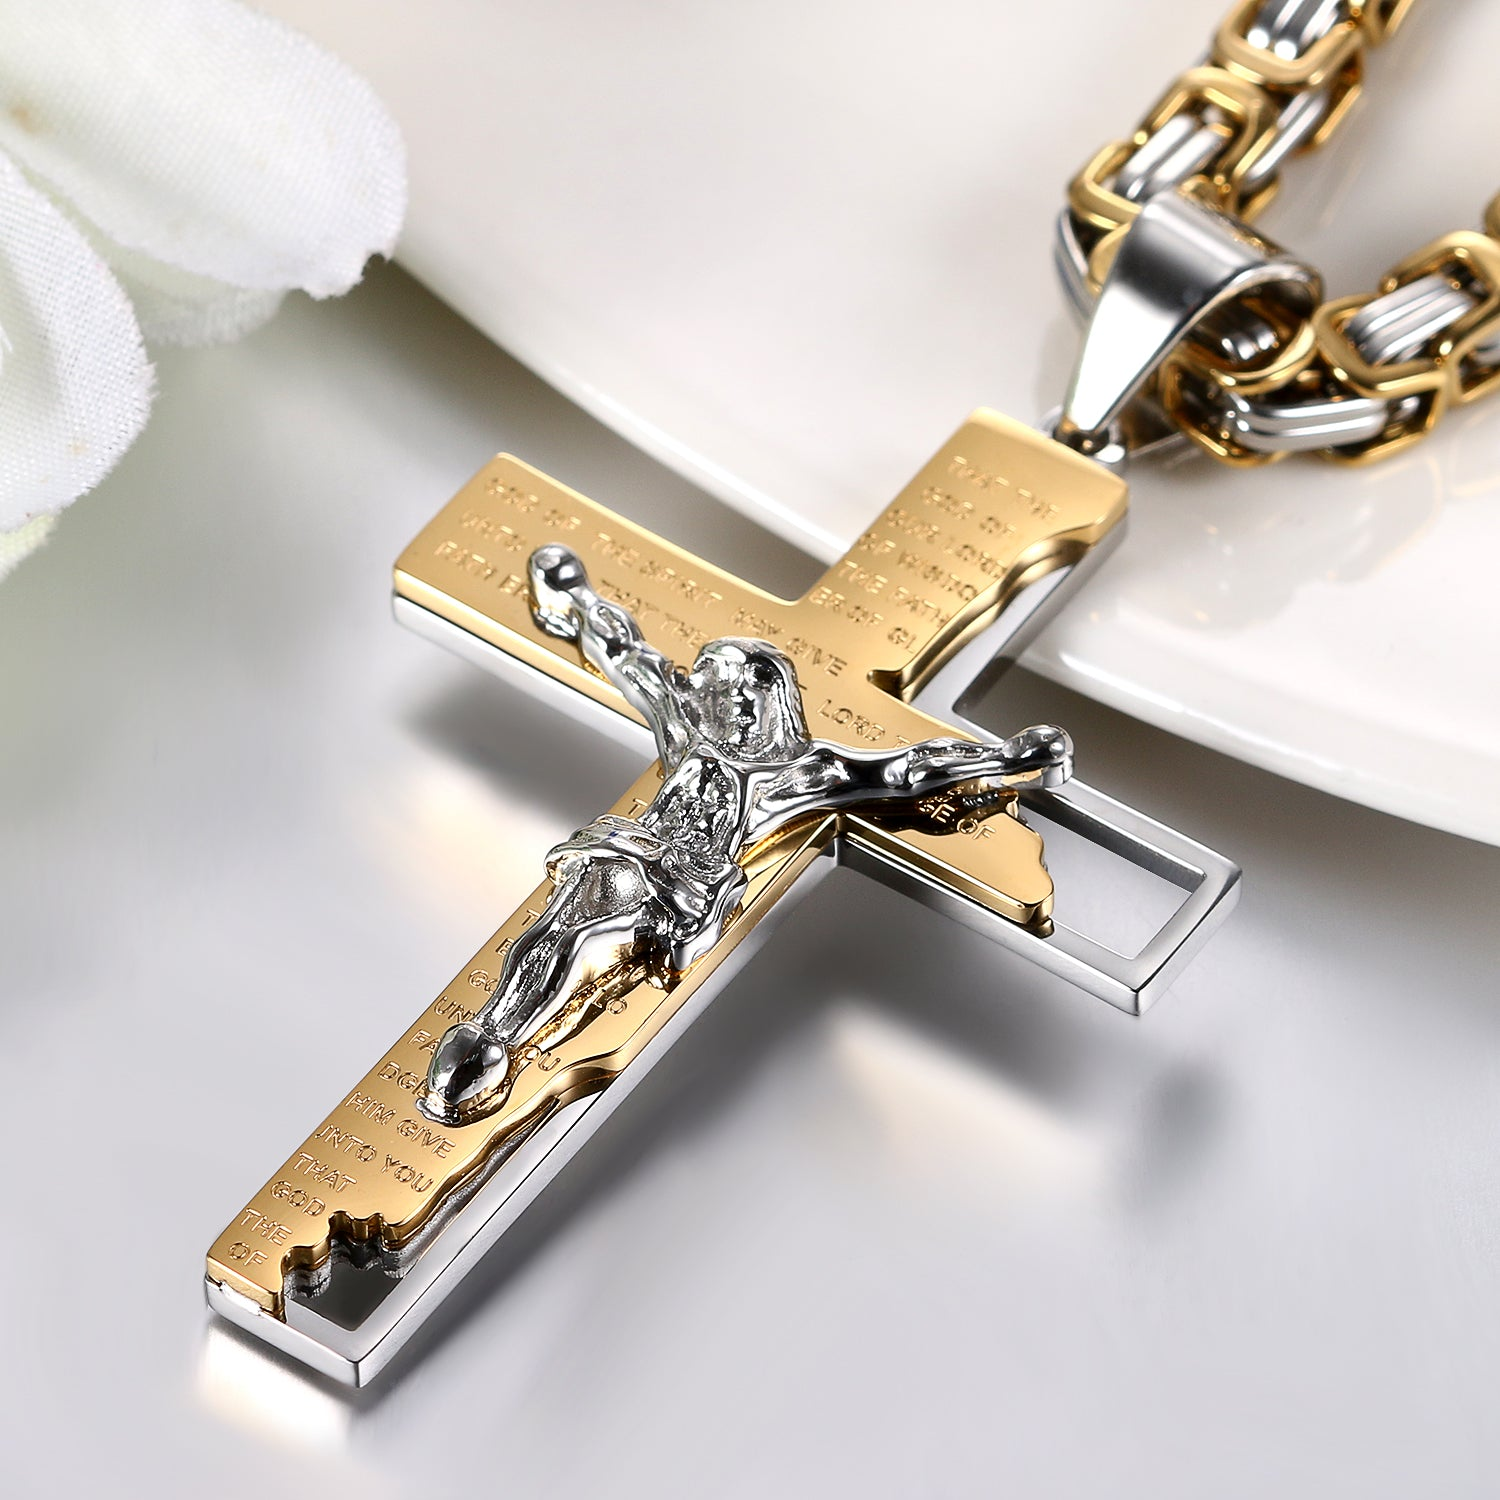 crucifix uk on inch pendant gold chain amj jewellerybox co product